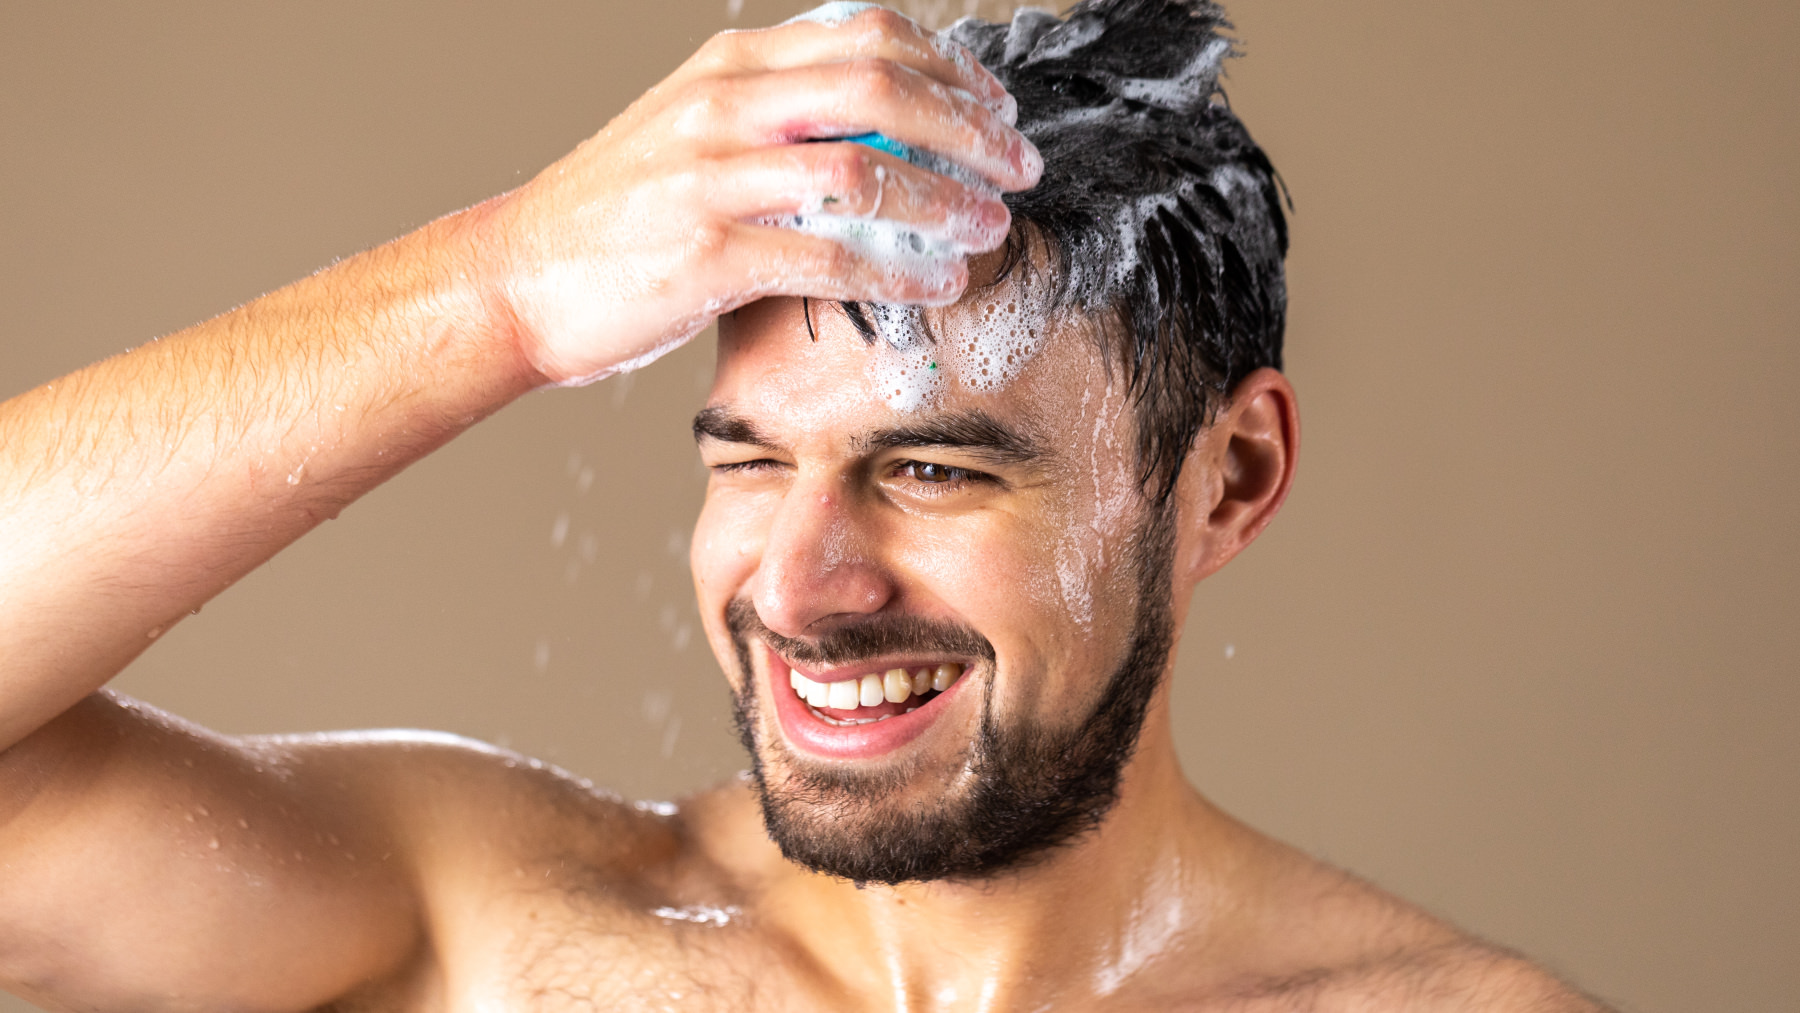 A man shampooing his dark hair